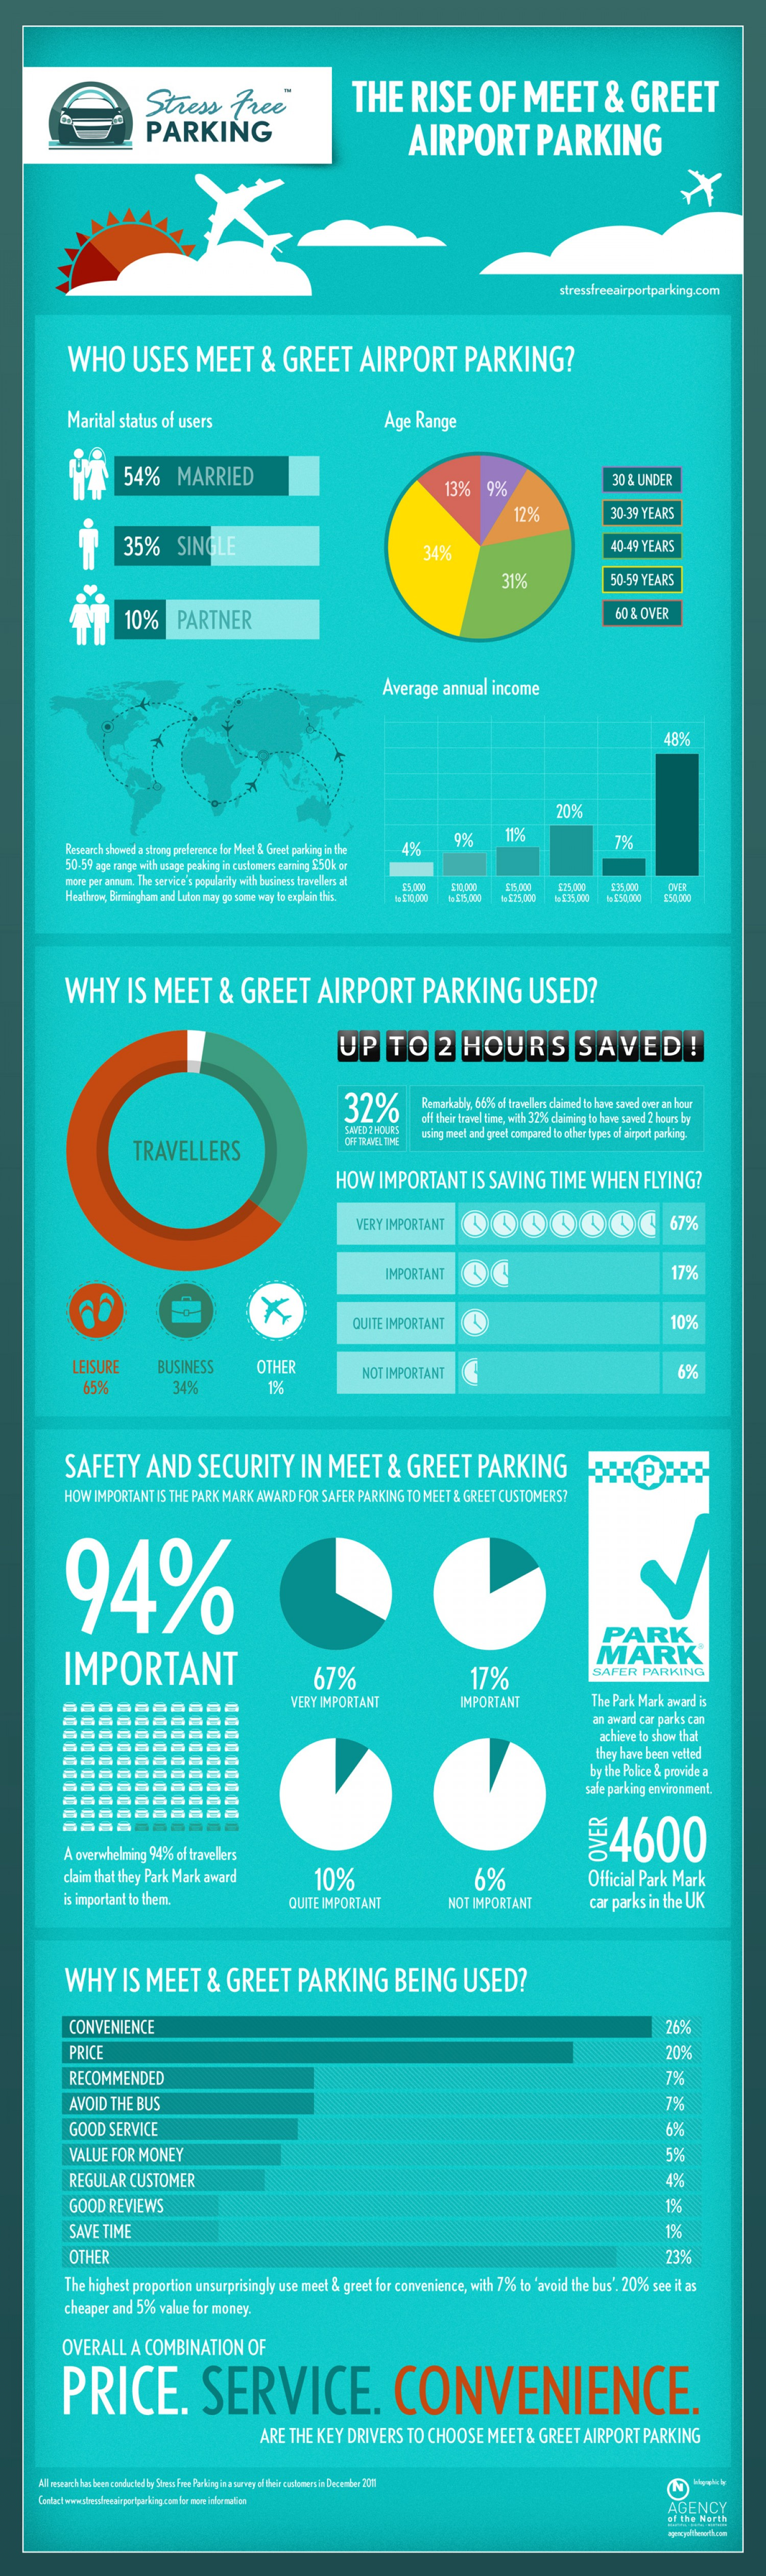 18. The rise of meet and greet airport parking